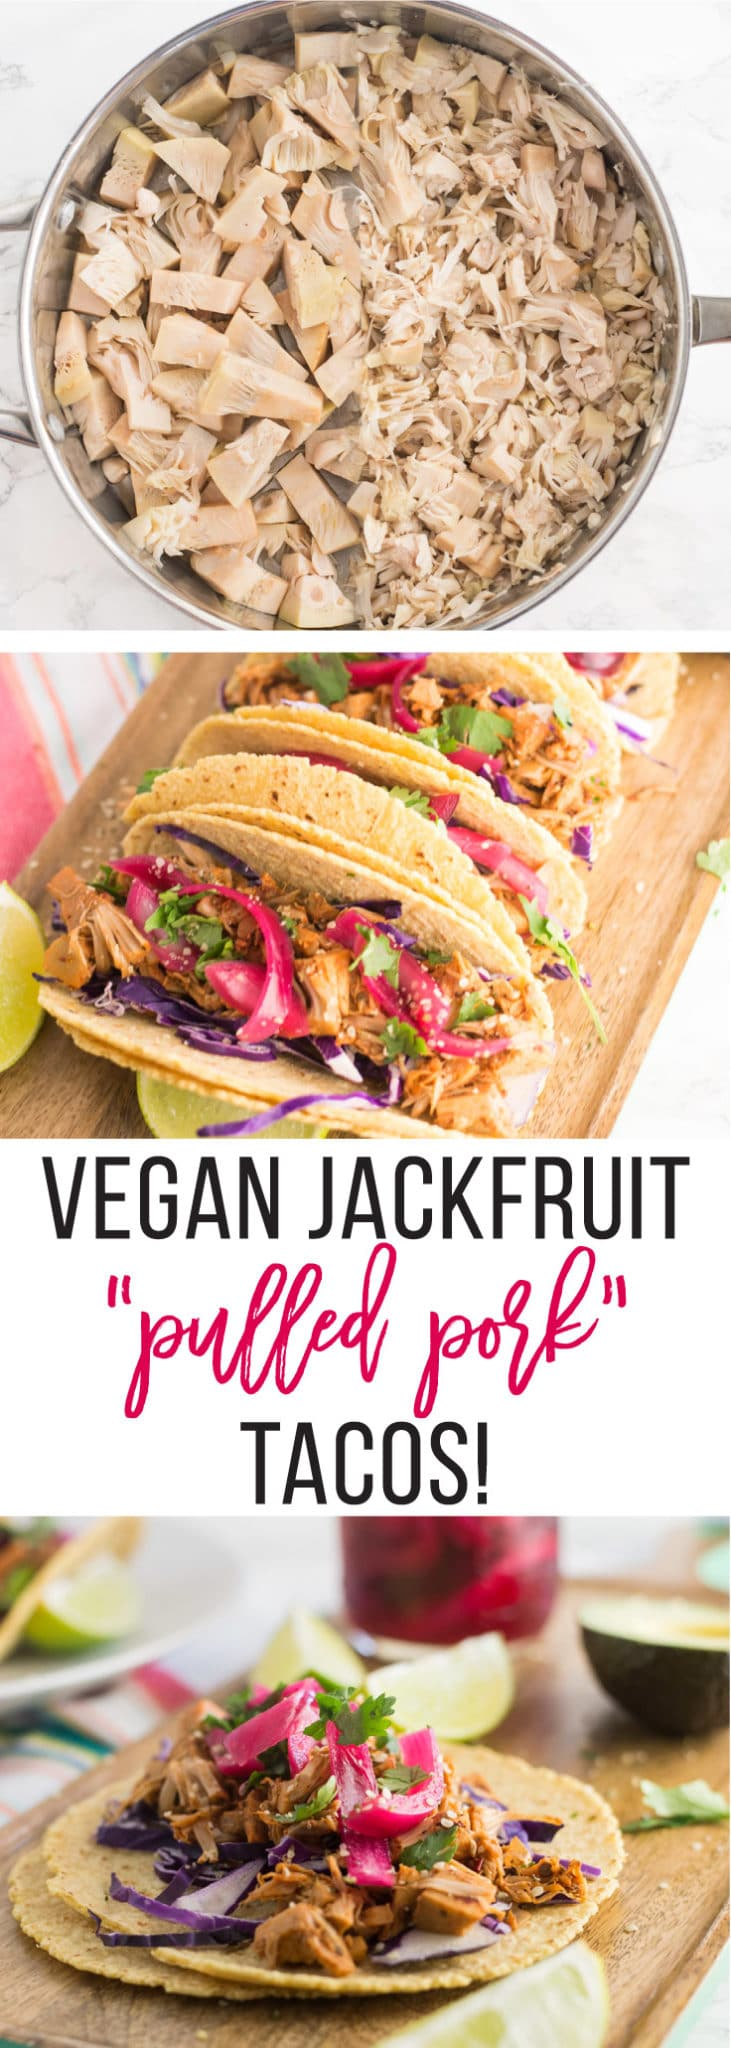 Vegan Jackfruit Pulled Pork Tacos -- These tacos are PERFECT for a vegan dinner recipe. Get ahold of some canned jackfruit for a plant based \